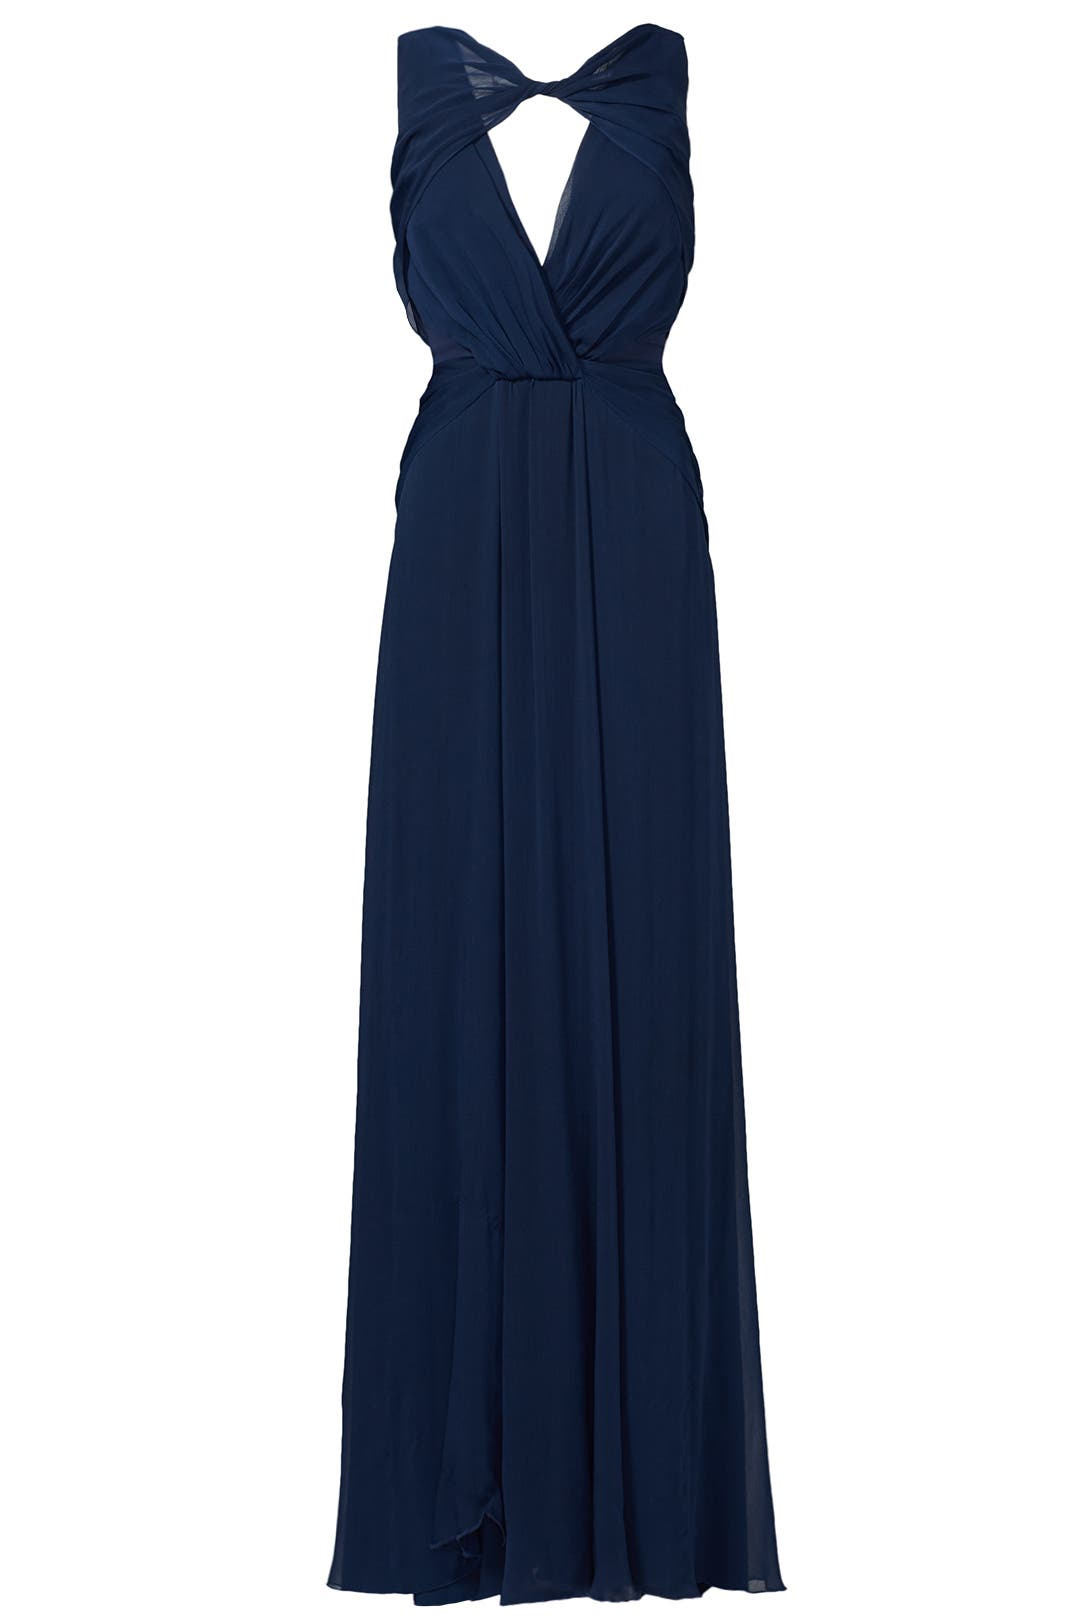 Navy Petunia Gown by Badgley Mischka for $95 - $115 | Rent the Runway